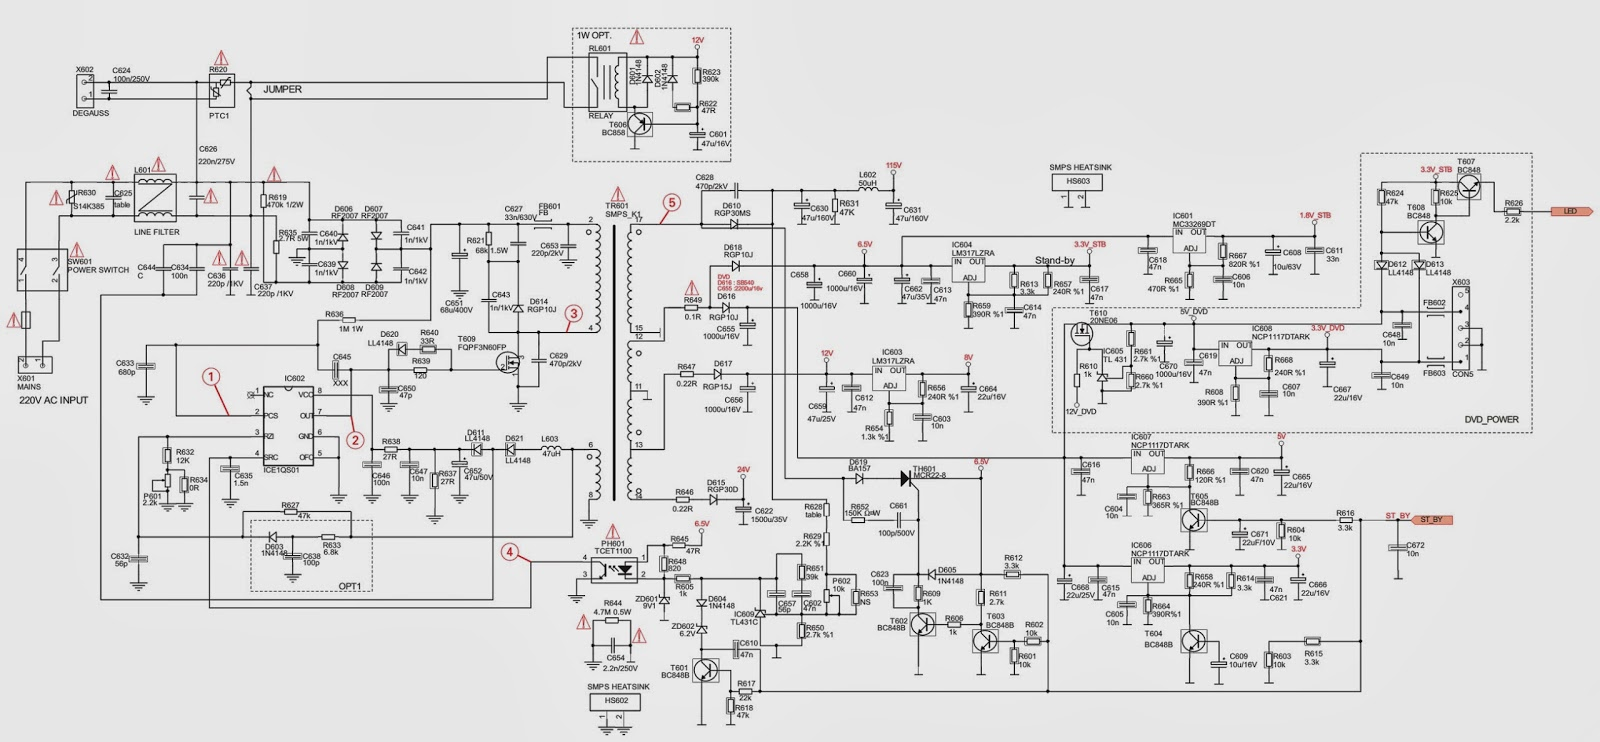 medium resolution of smps power supply circuit diagram electric mx tl 6000 power supply smps schematic circuit digram electro help